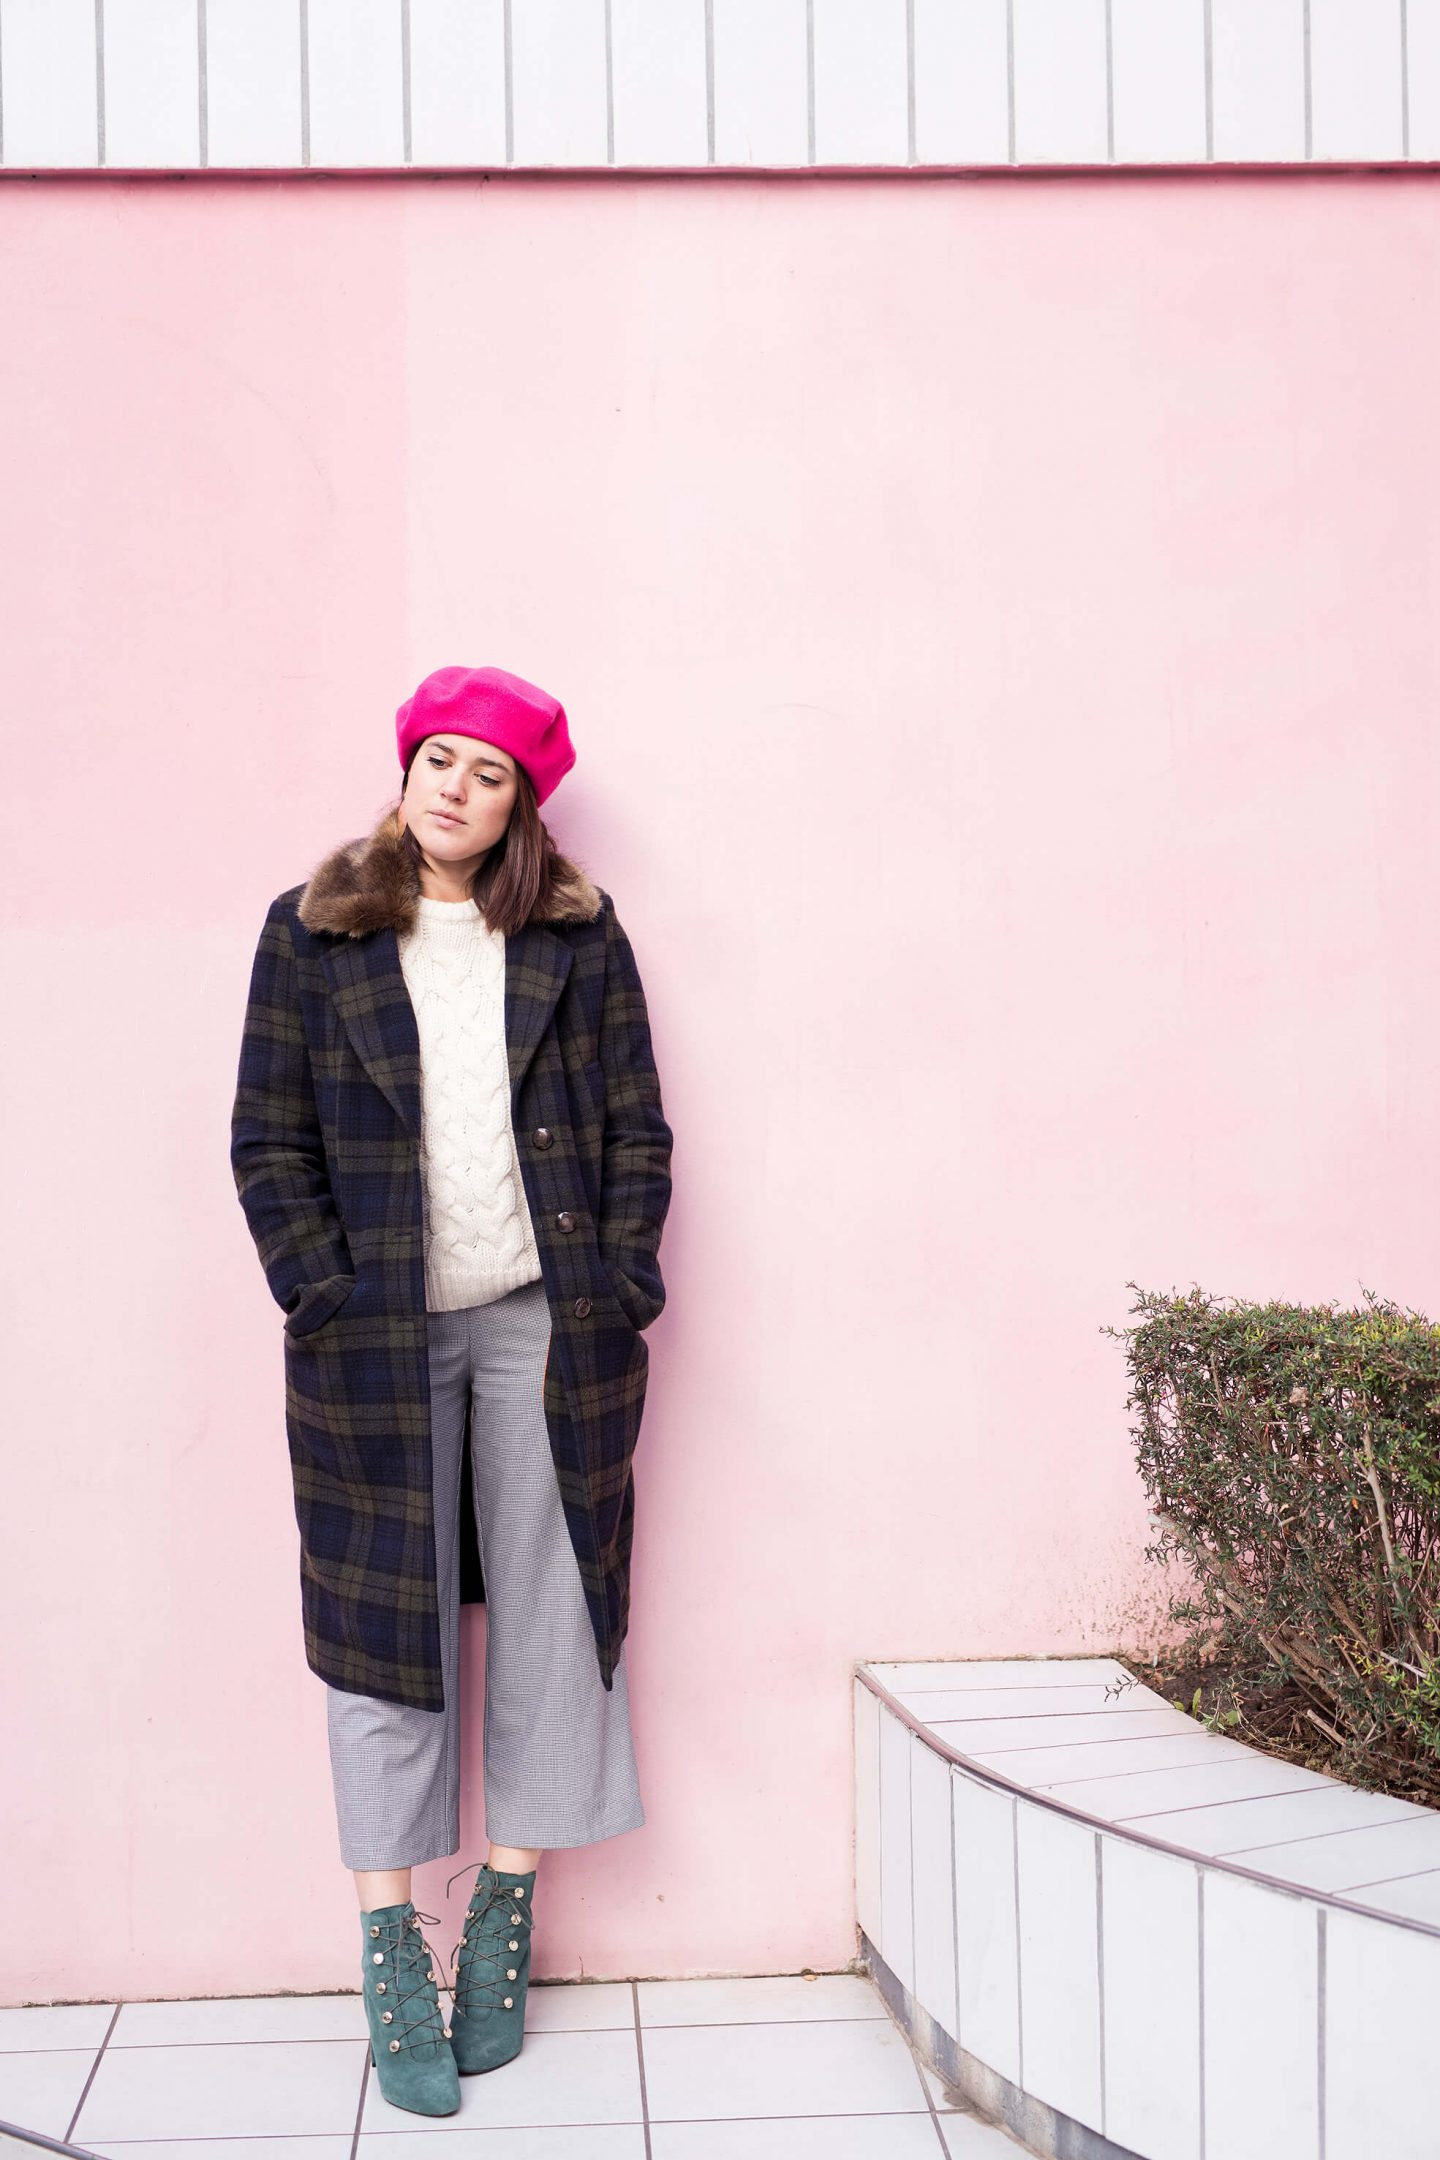 look manteau tartan Lener beret rose l'atelier d'al street style Paris blog mode lifestyle